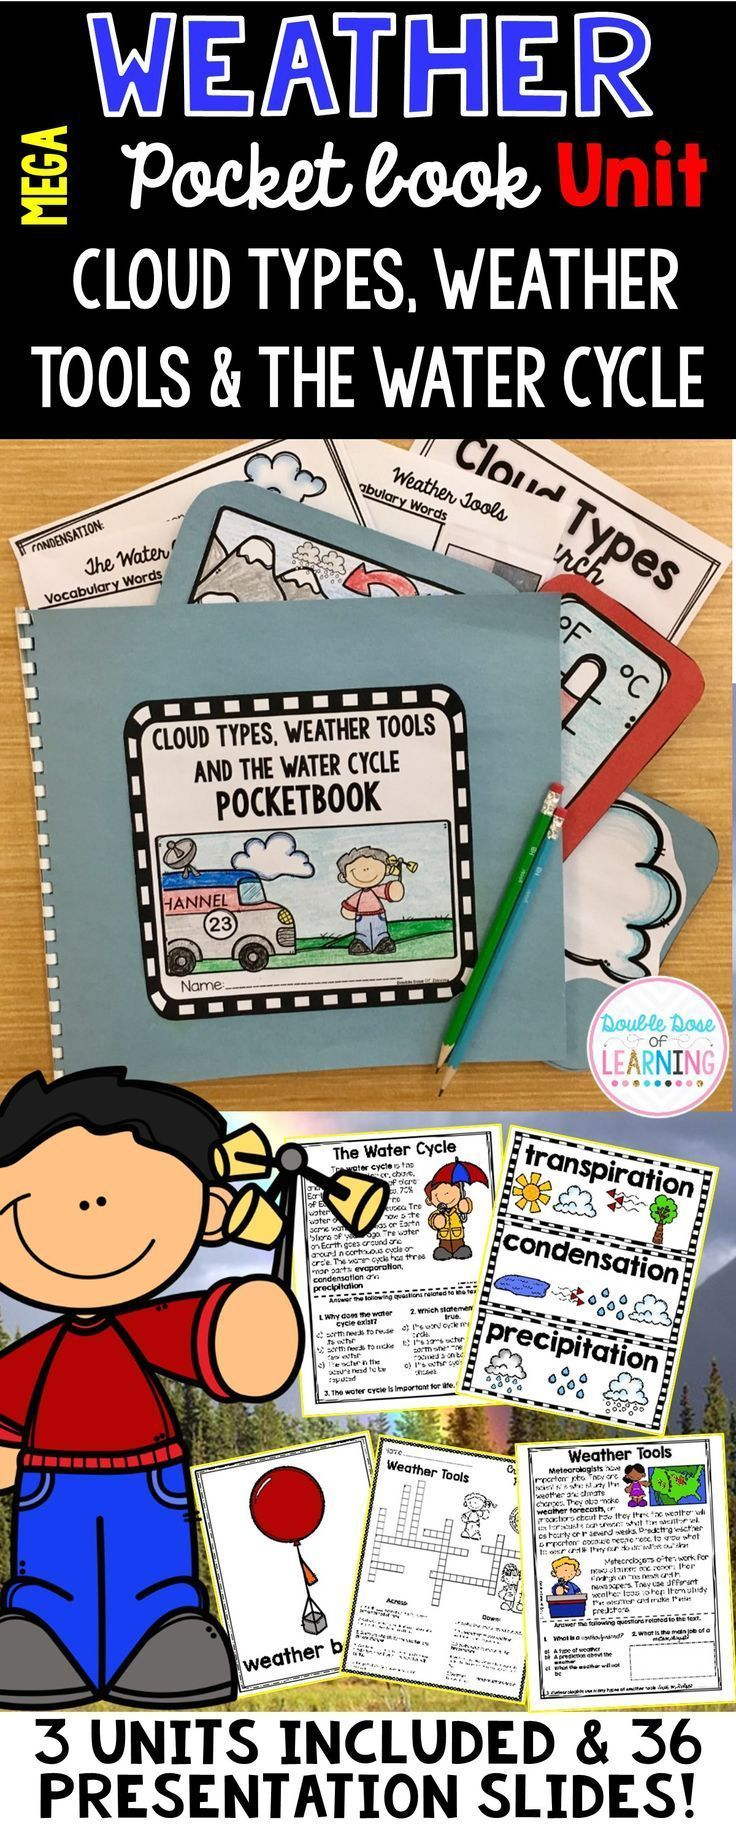 Easily and thoroughly teach your students about Weather Tools, Cloud Types and the Water Cycle in science with these ready to go Pocketbook Portfolio with PowerPoints! The 3 units included are interactive and utilize multimodal strategies to increase student engagement and outcomes. Three weeks worth of materials integrate technology, vocabulary, writing, art, reading strategies and more! Students will respond to informational text by answering questions in 3 student booklets.